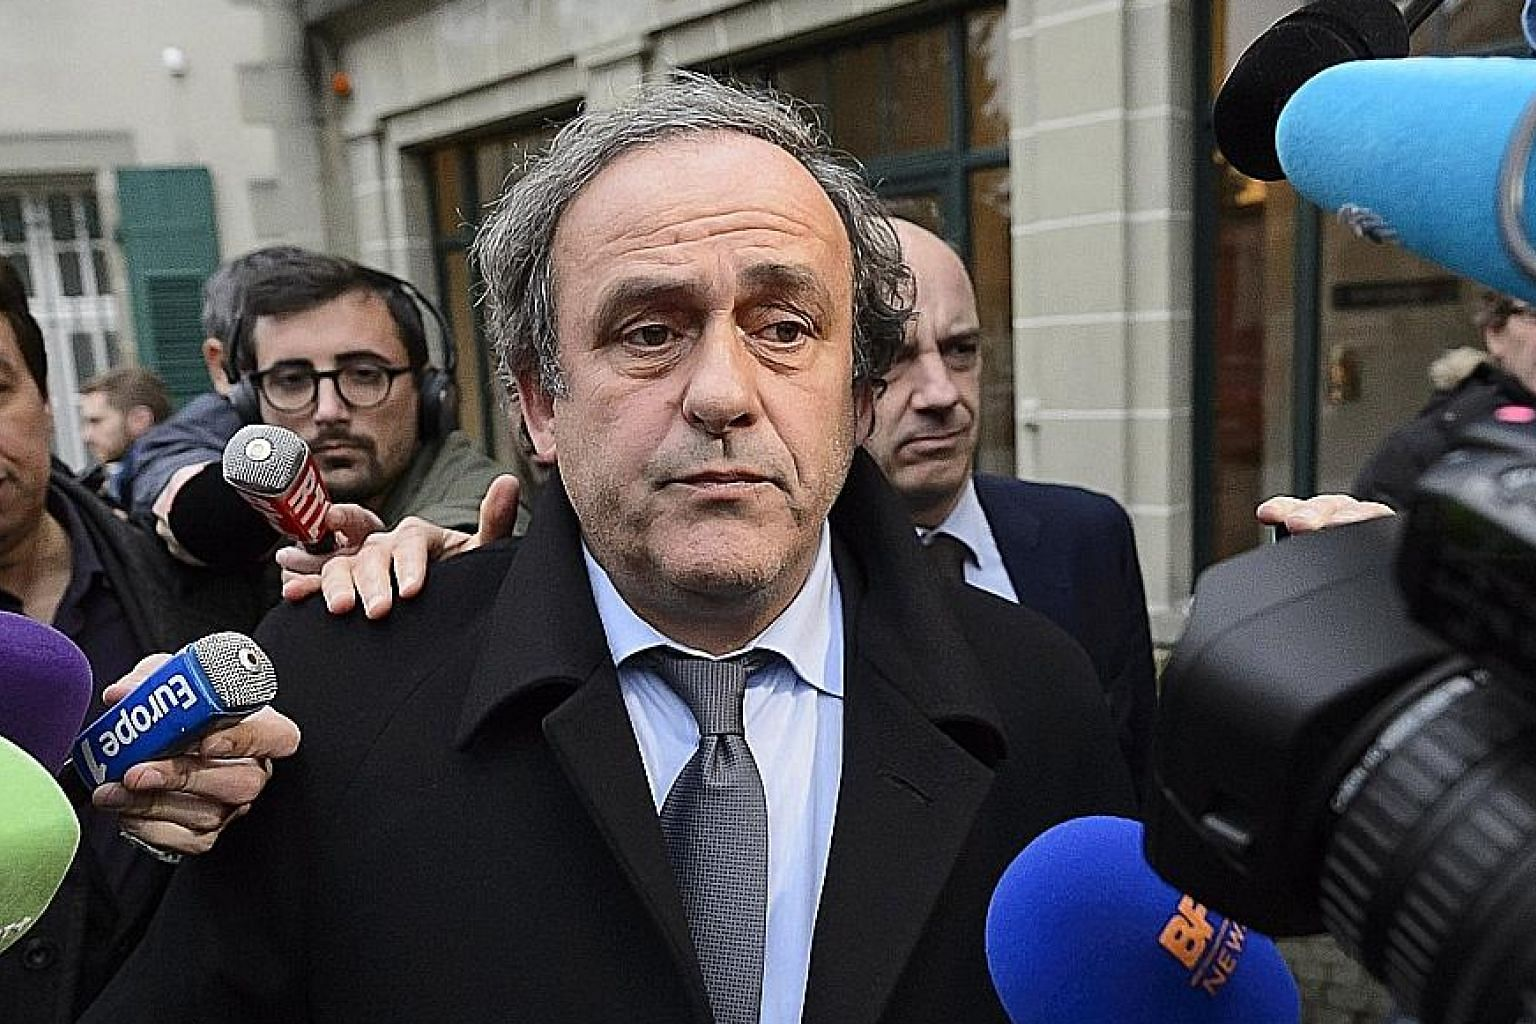 Former Uefa president Michel Platini, in a 2015 file picture, is believed to be under interrogation by the Anti-Corruption Office of the Judicial Police in Nanterre, near Paris. PHOTO: EPA-EFE